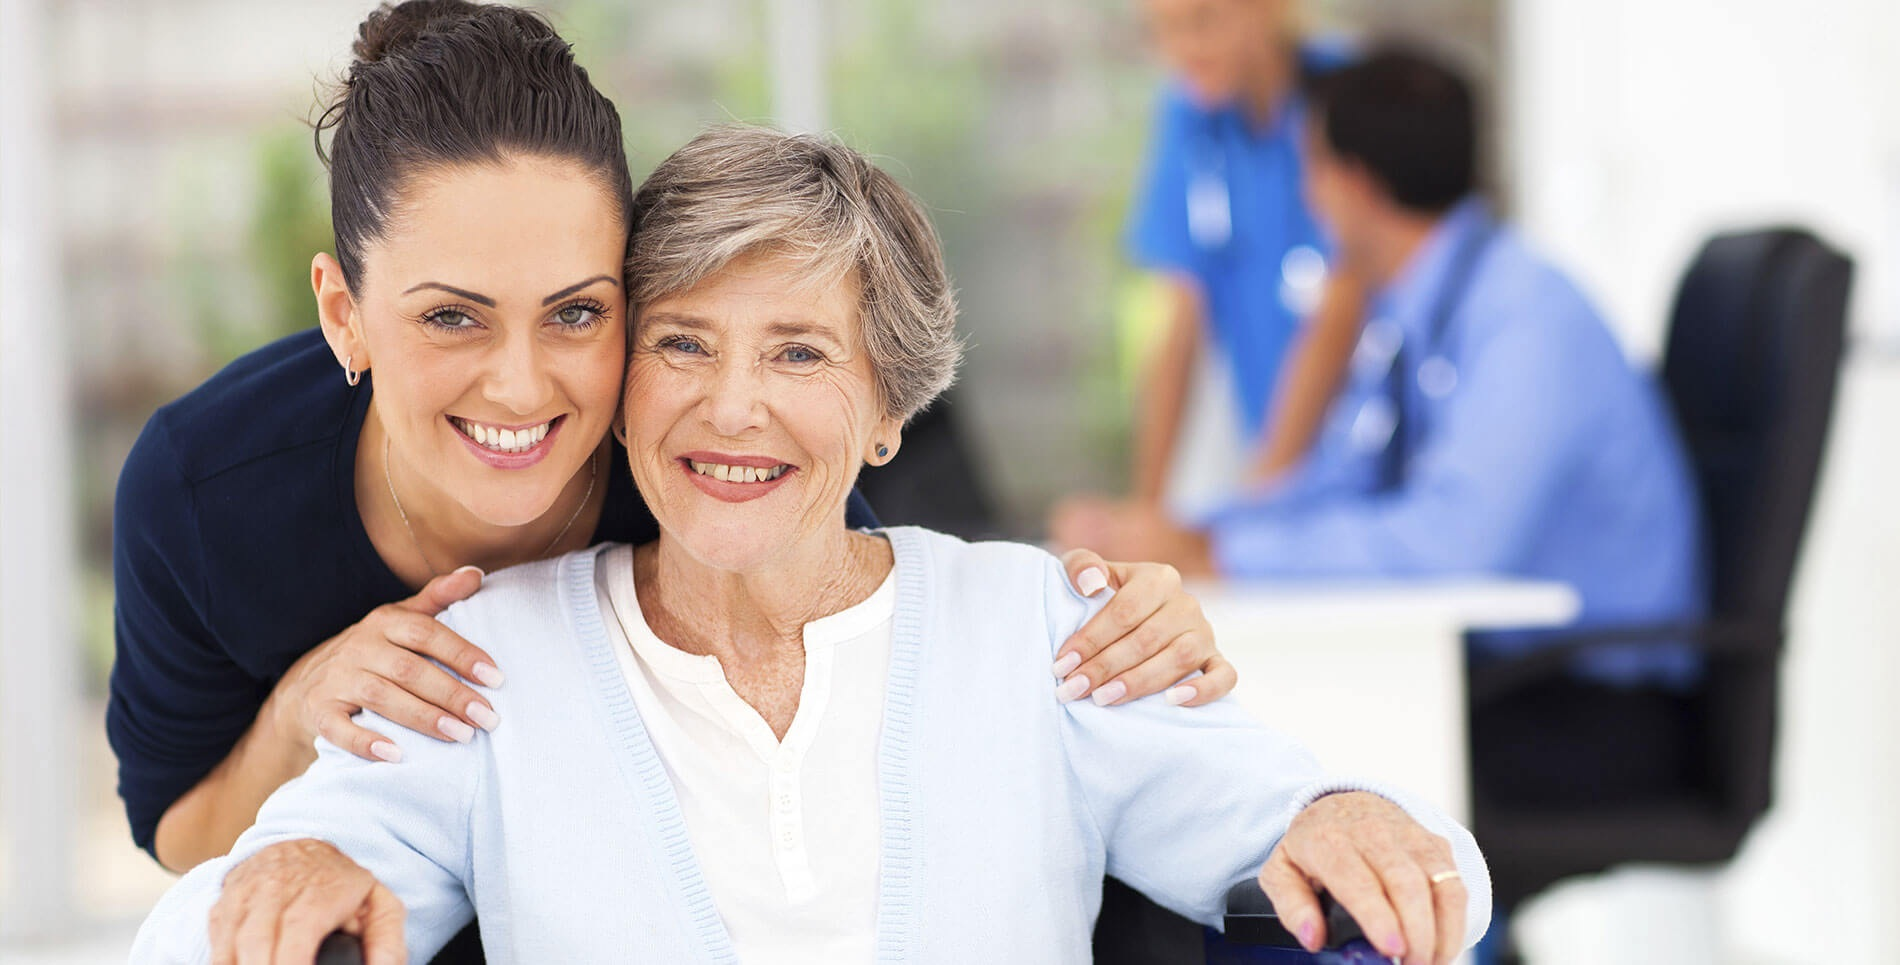 Where are the Best Memory Care Facilities in Escondido CA?